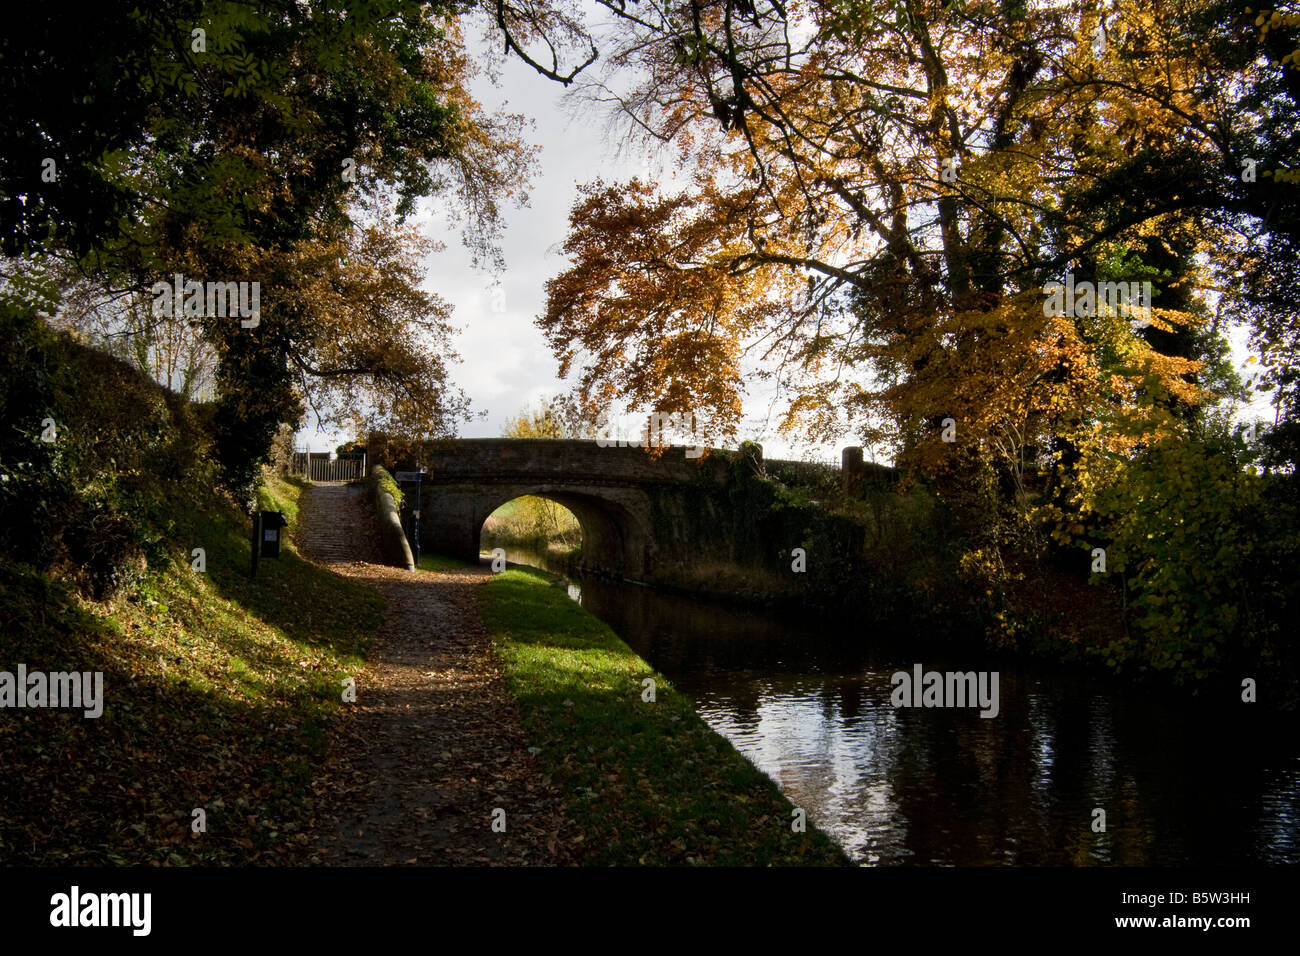 Towpath in autumnal colours alongside the Shropshire Union Canal near Ellesmere, Shropshire, England - Stock Image